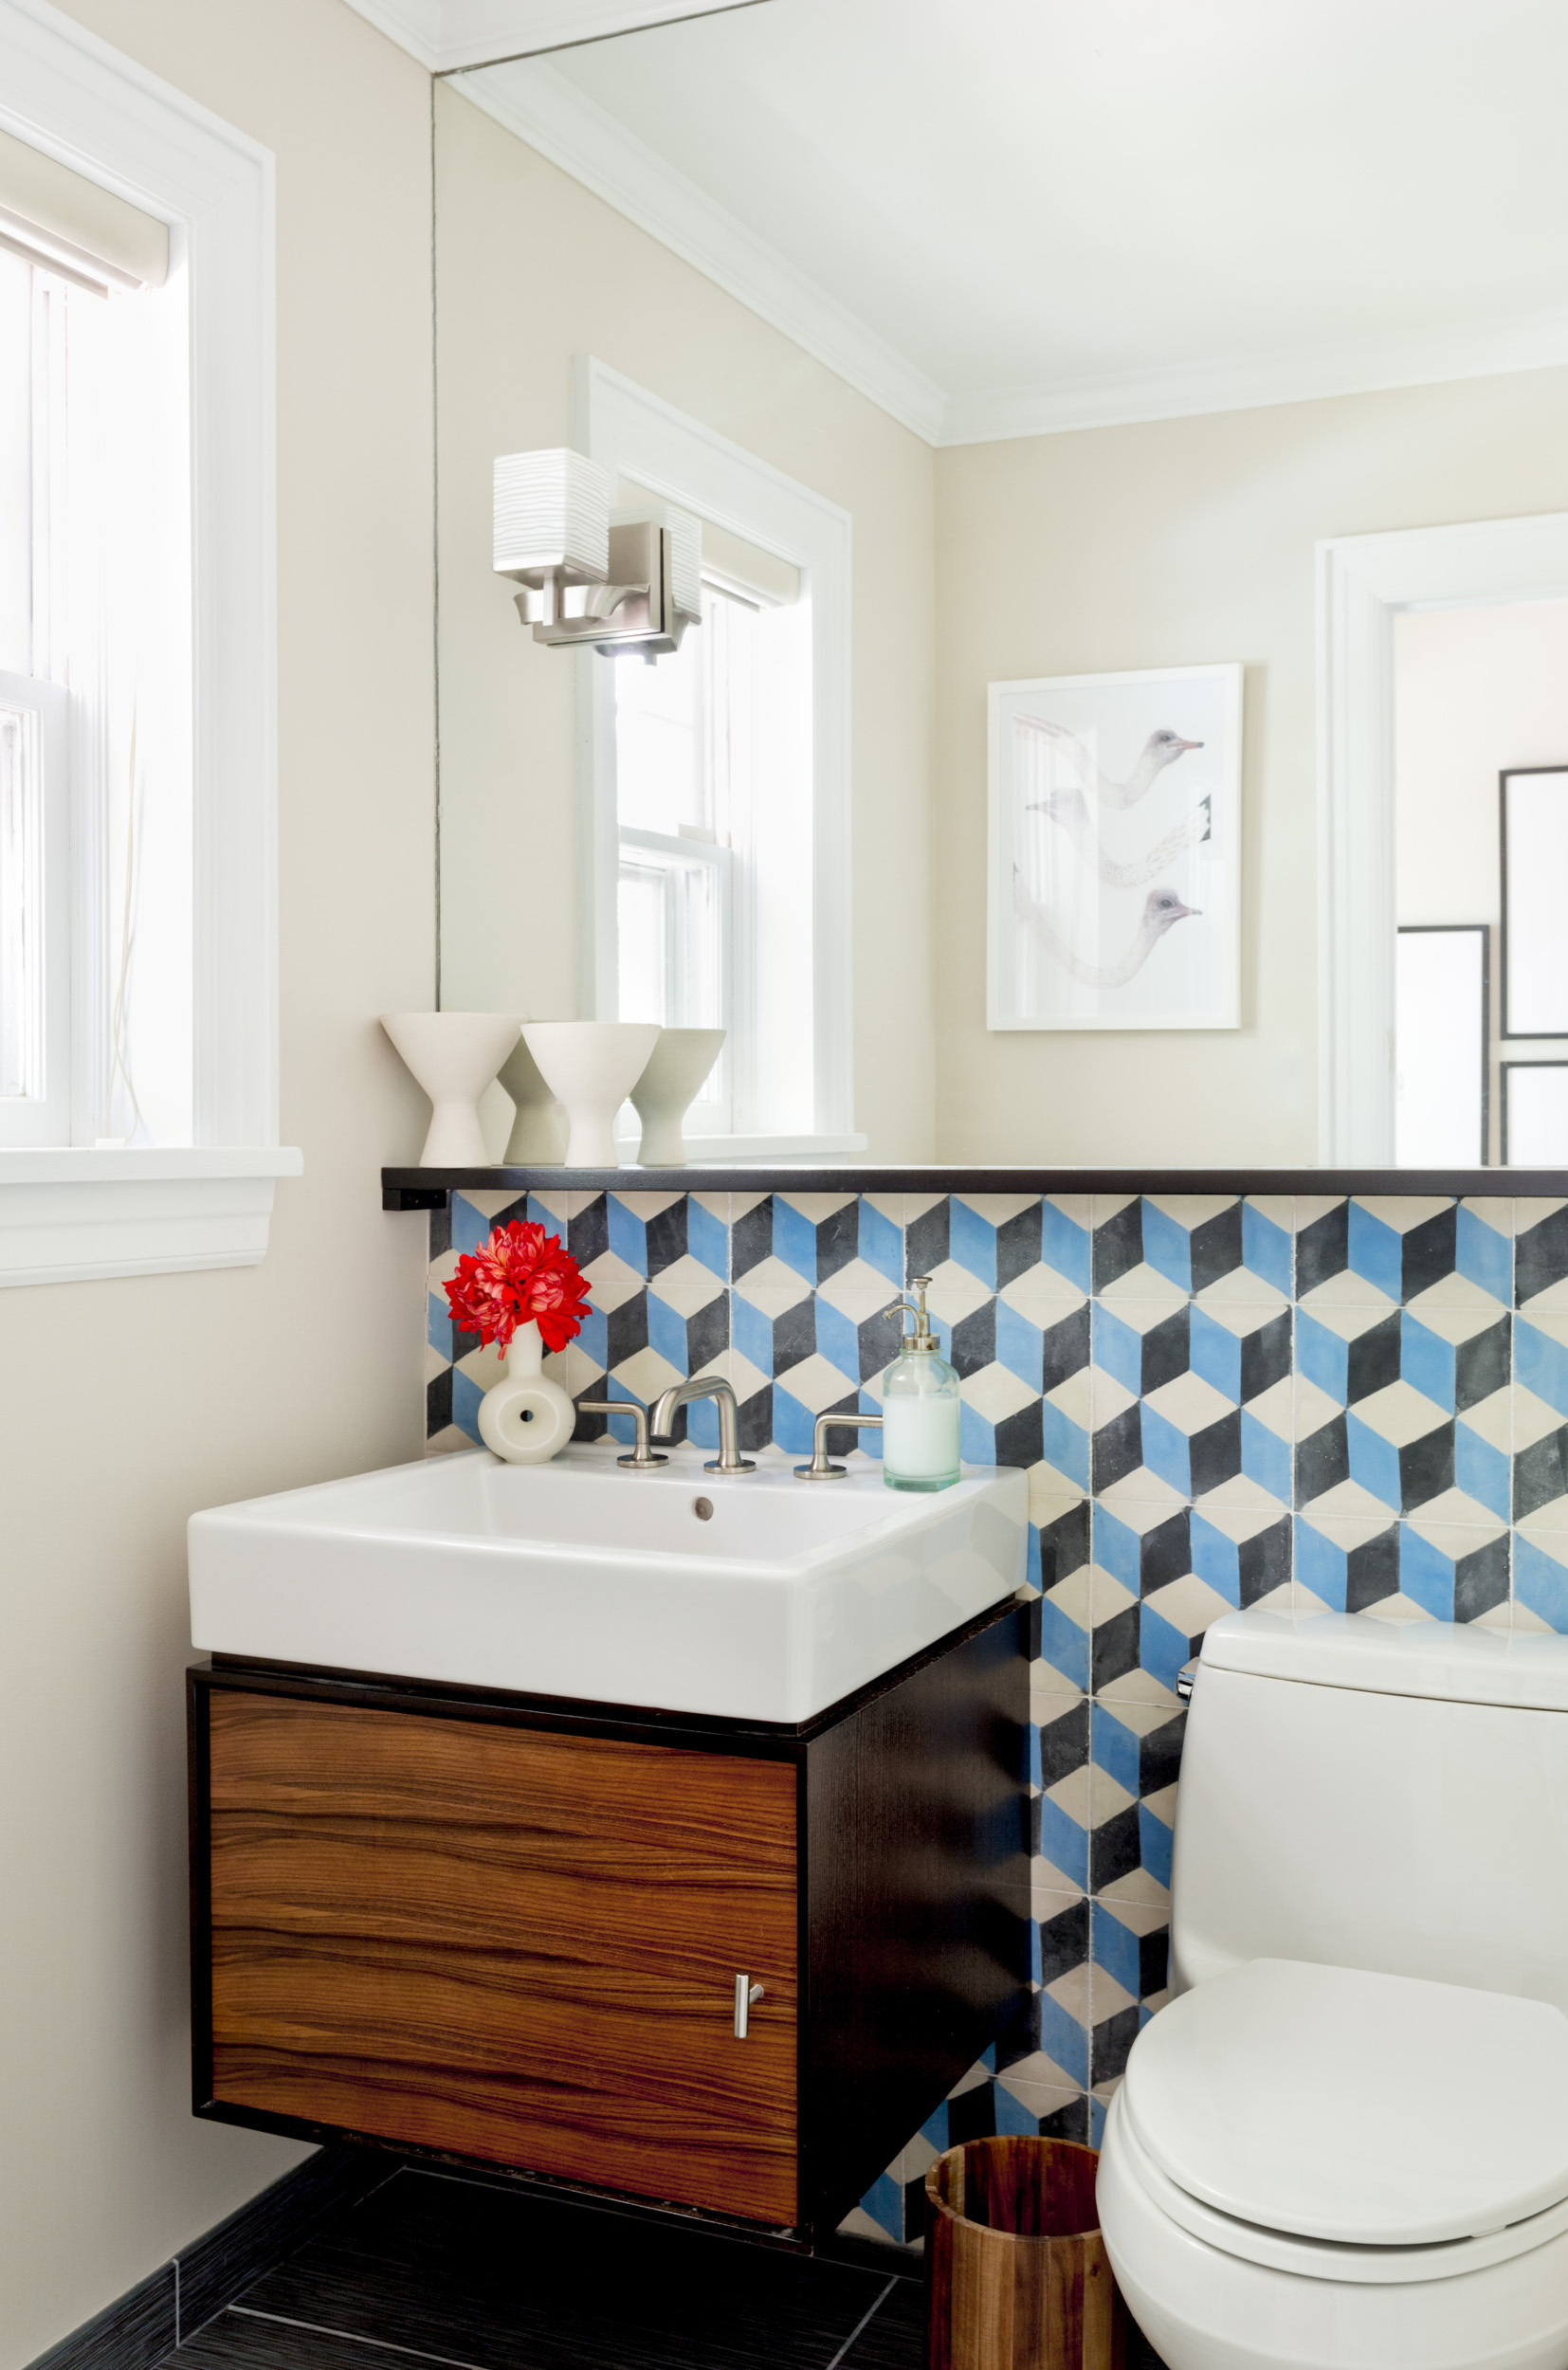 Caroline Kopp Bathroom Designers Connecticut.jpg